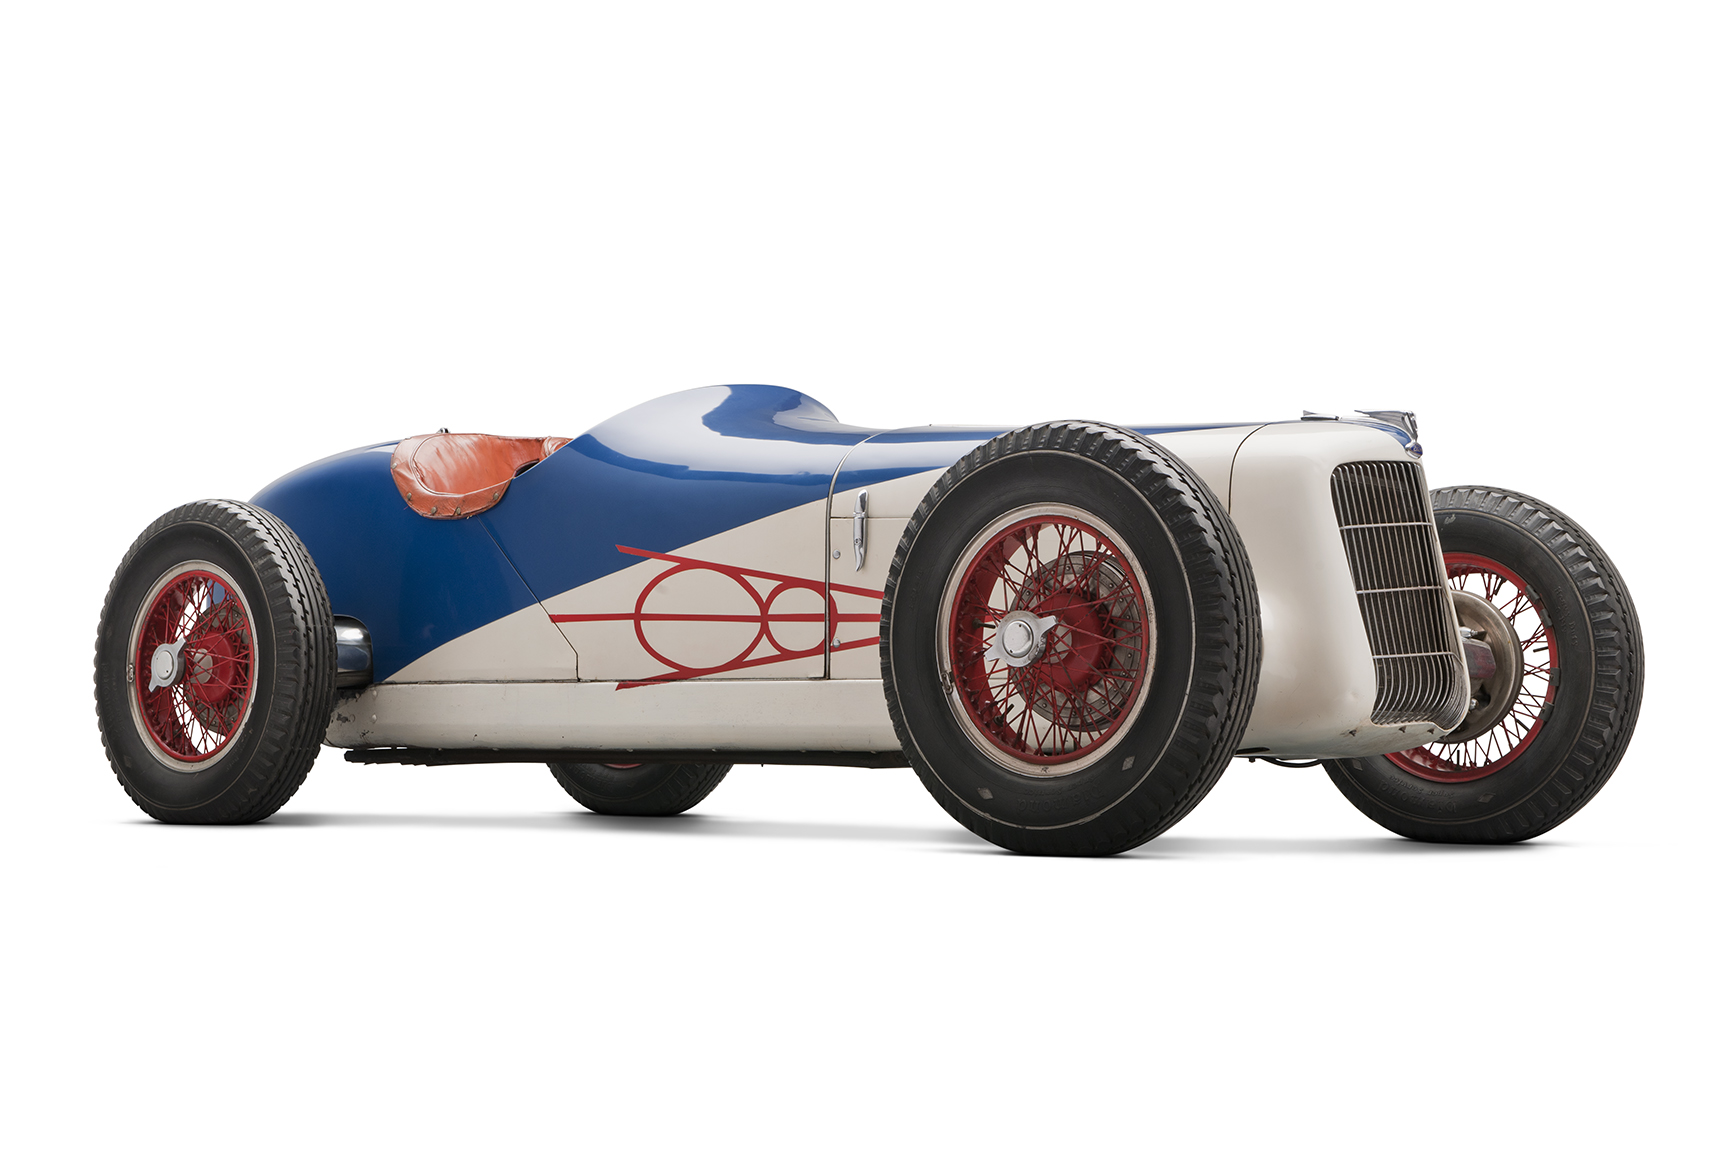 1935 Ford-Miller Special front 3/4